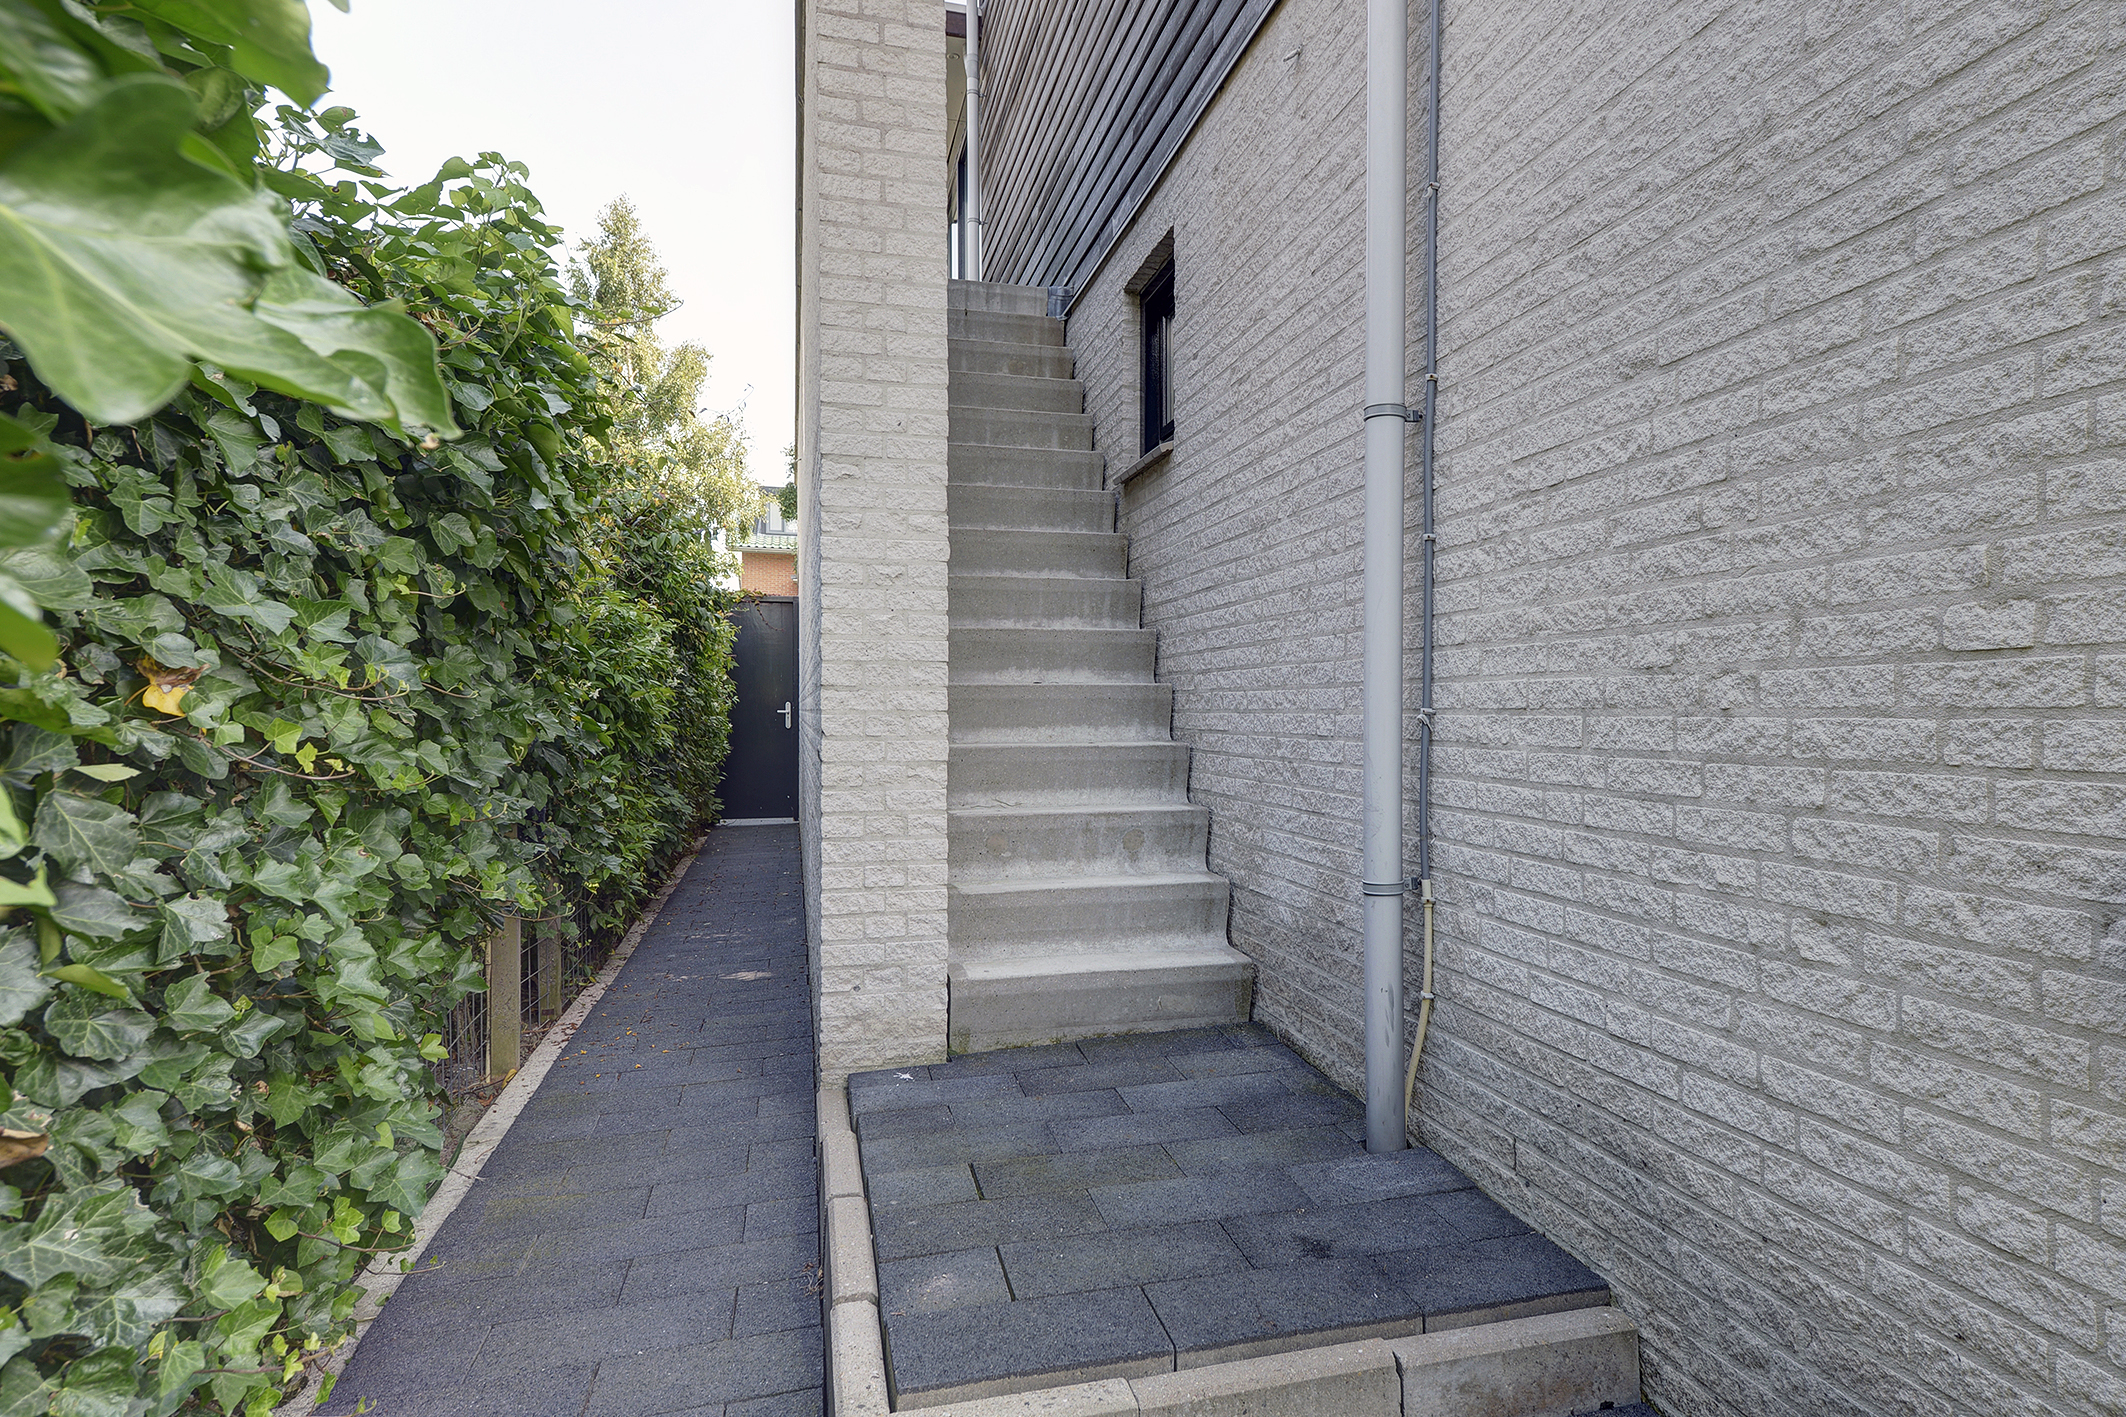 '$houseDetails->street_name'.' '.'$houseDetails->number'